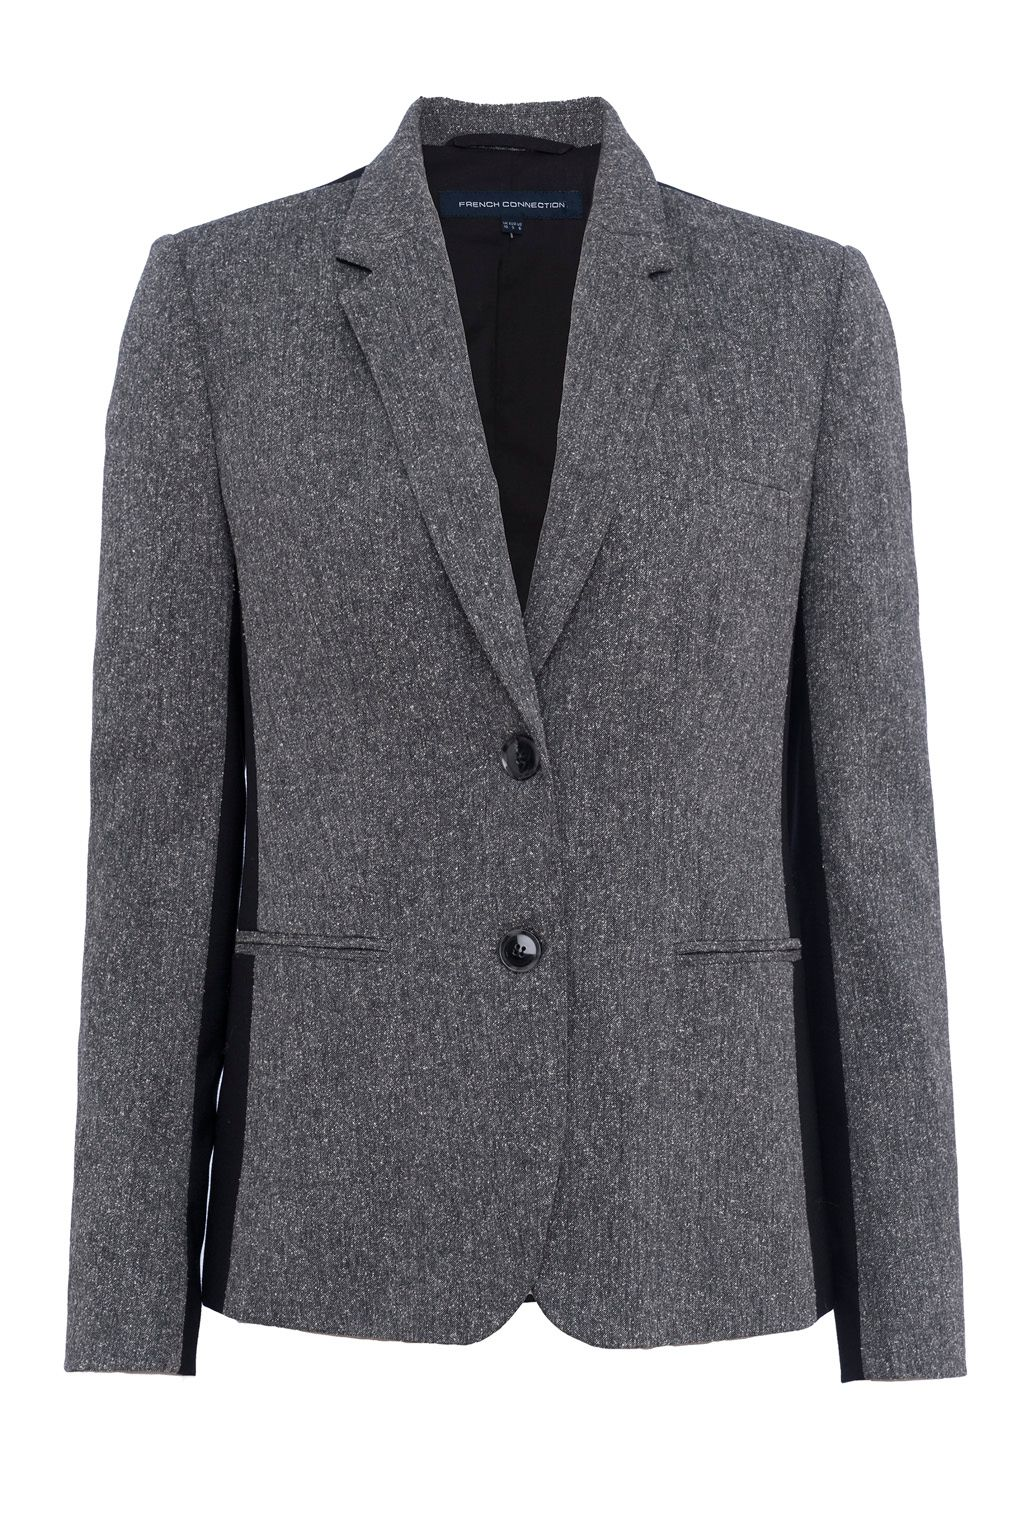 French Connection Antonia Tweed Jacket, Black